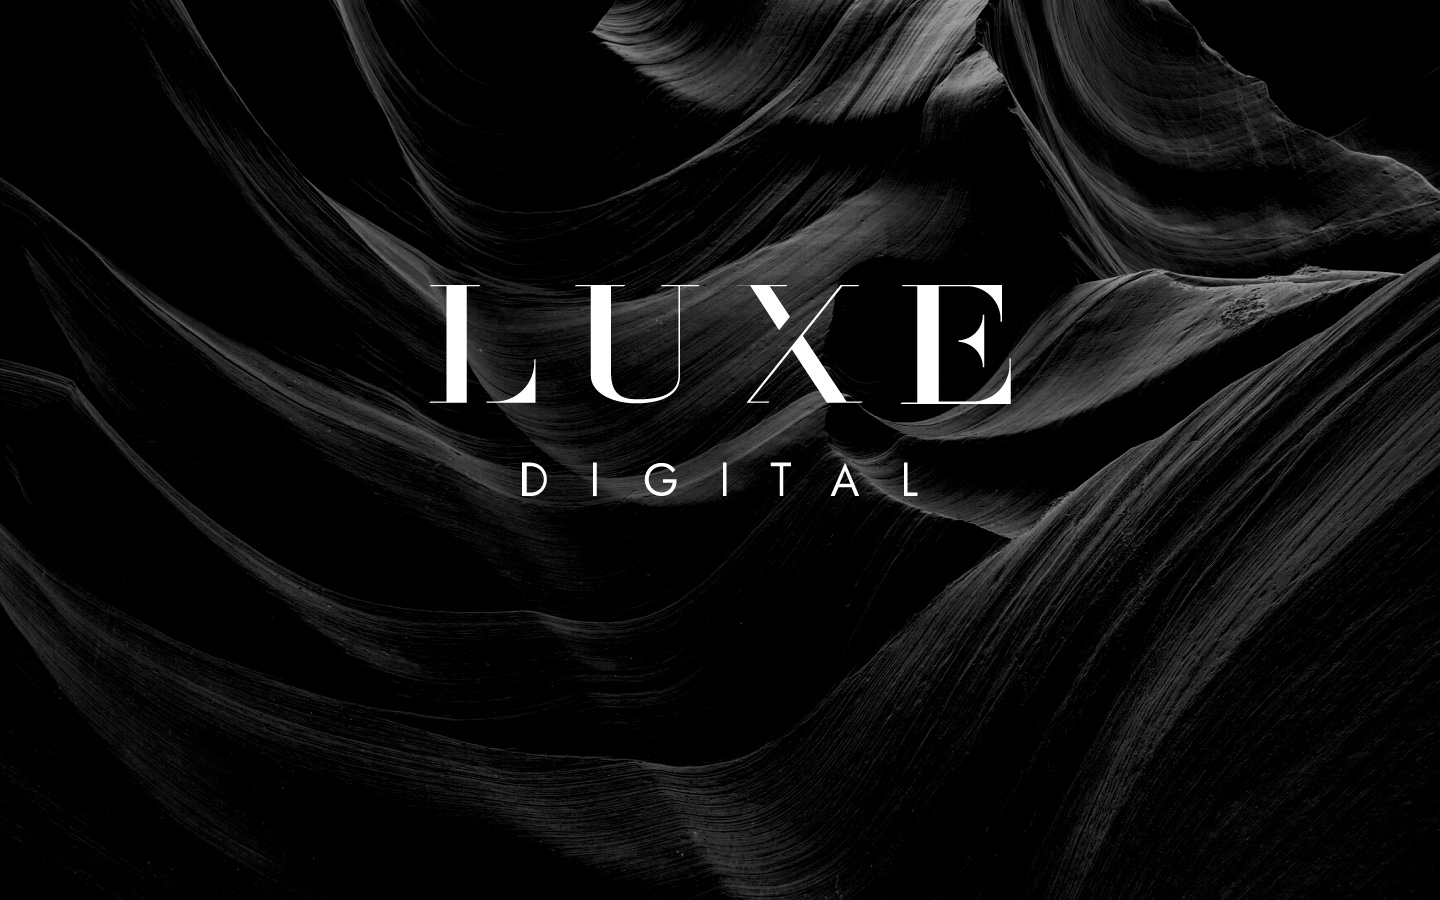 Introducing Luxe Digital, a Venture of mOOnshot digital